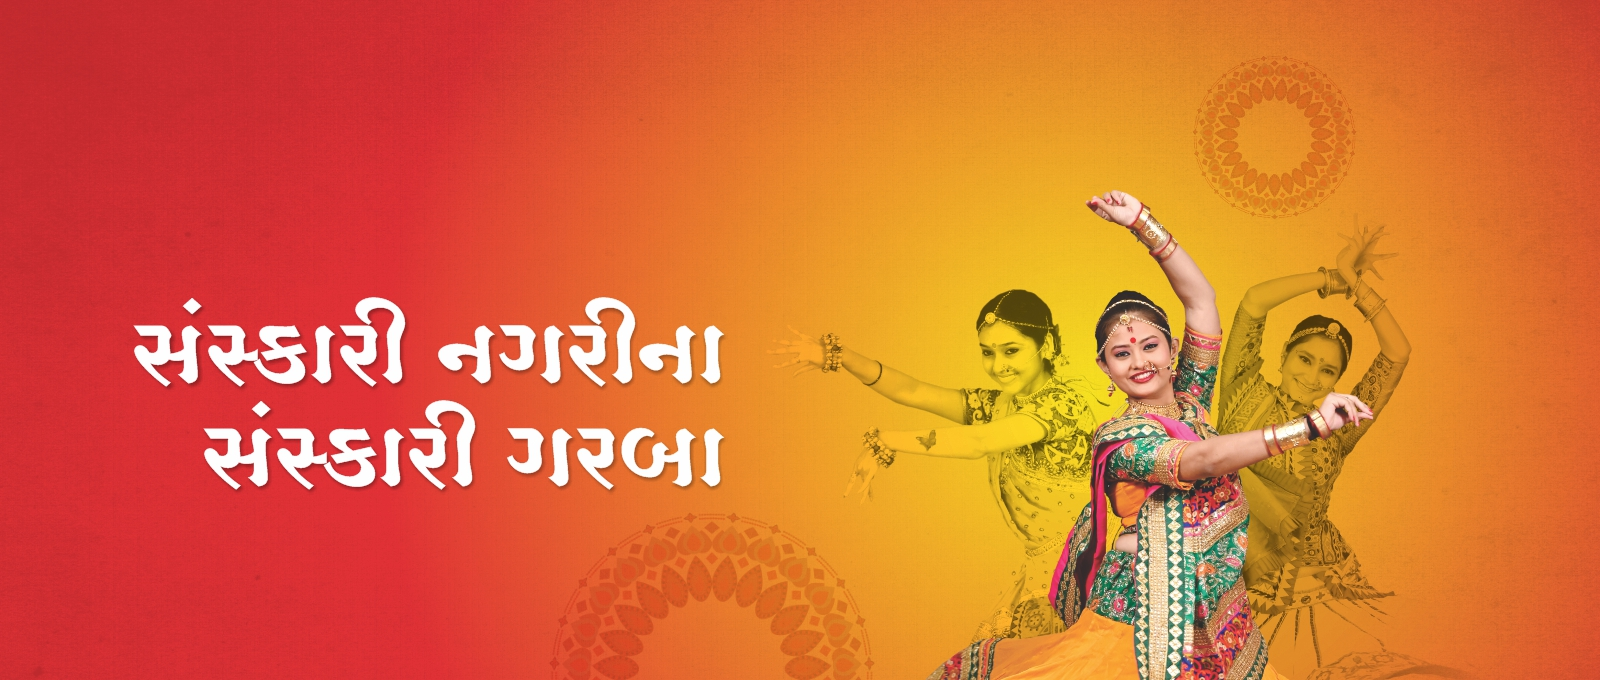 THIS NAVRATRI EXPERIENCE IS THE NEXT VIBRANT THING TO DO